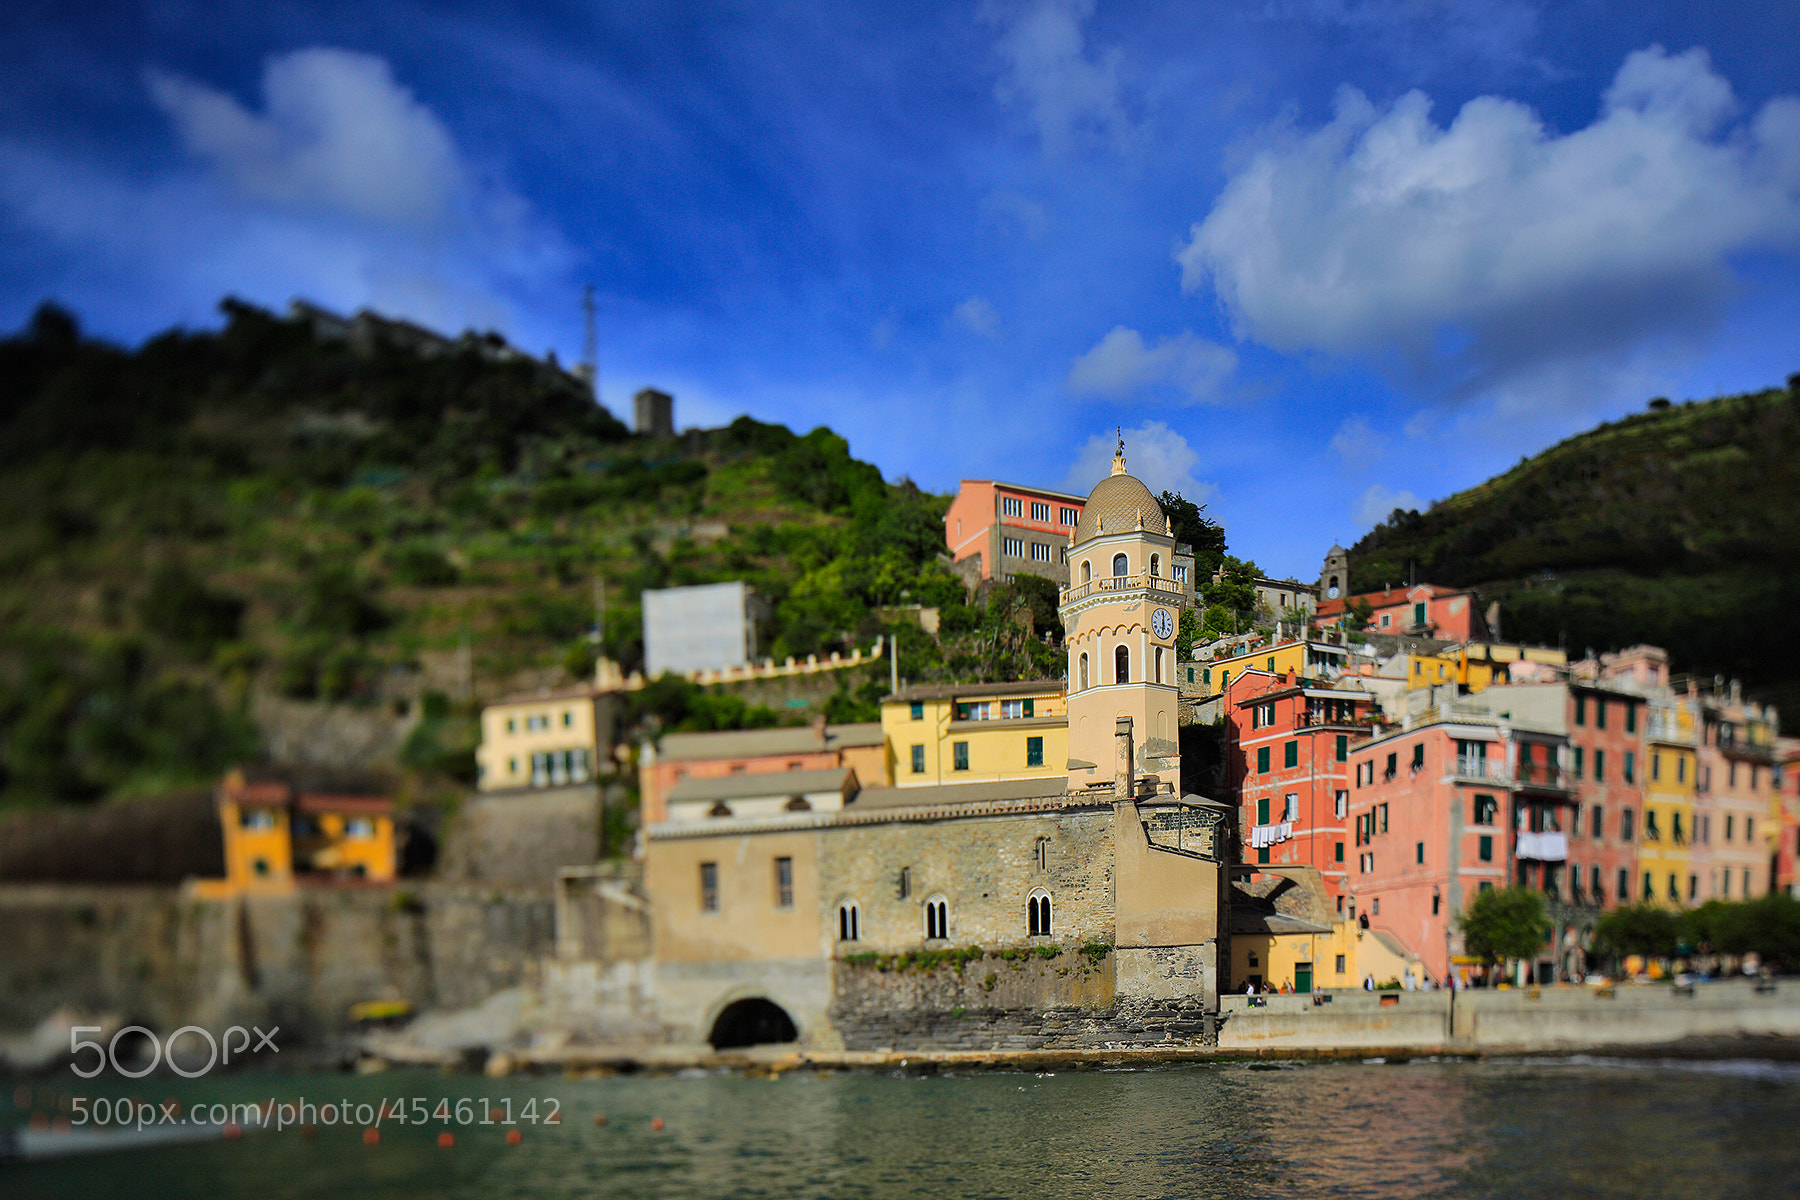 Photograph Vernazza,Cinque Terre,Italy by Paolo Guidetti on 500px